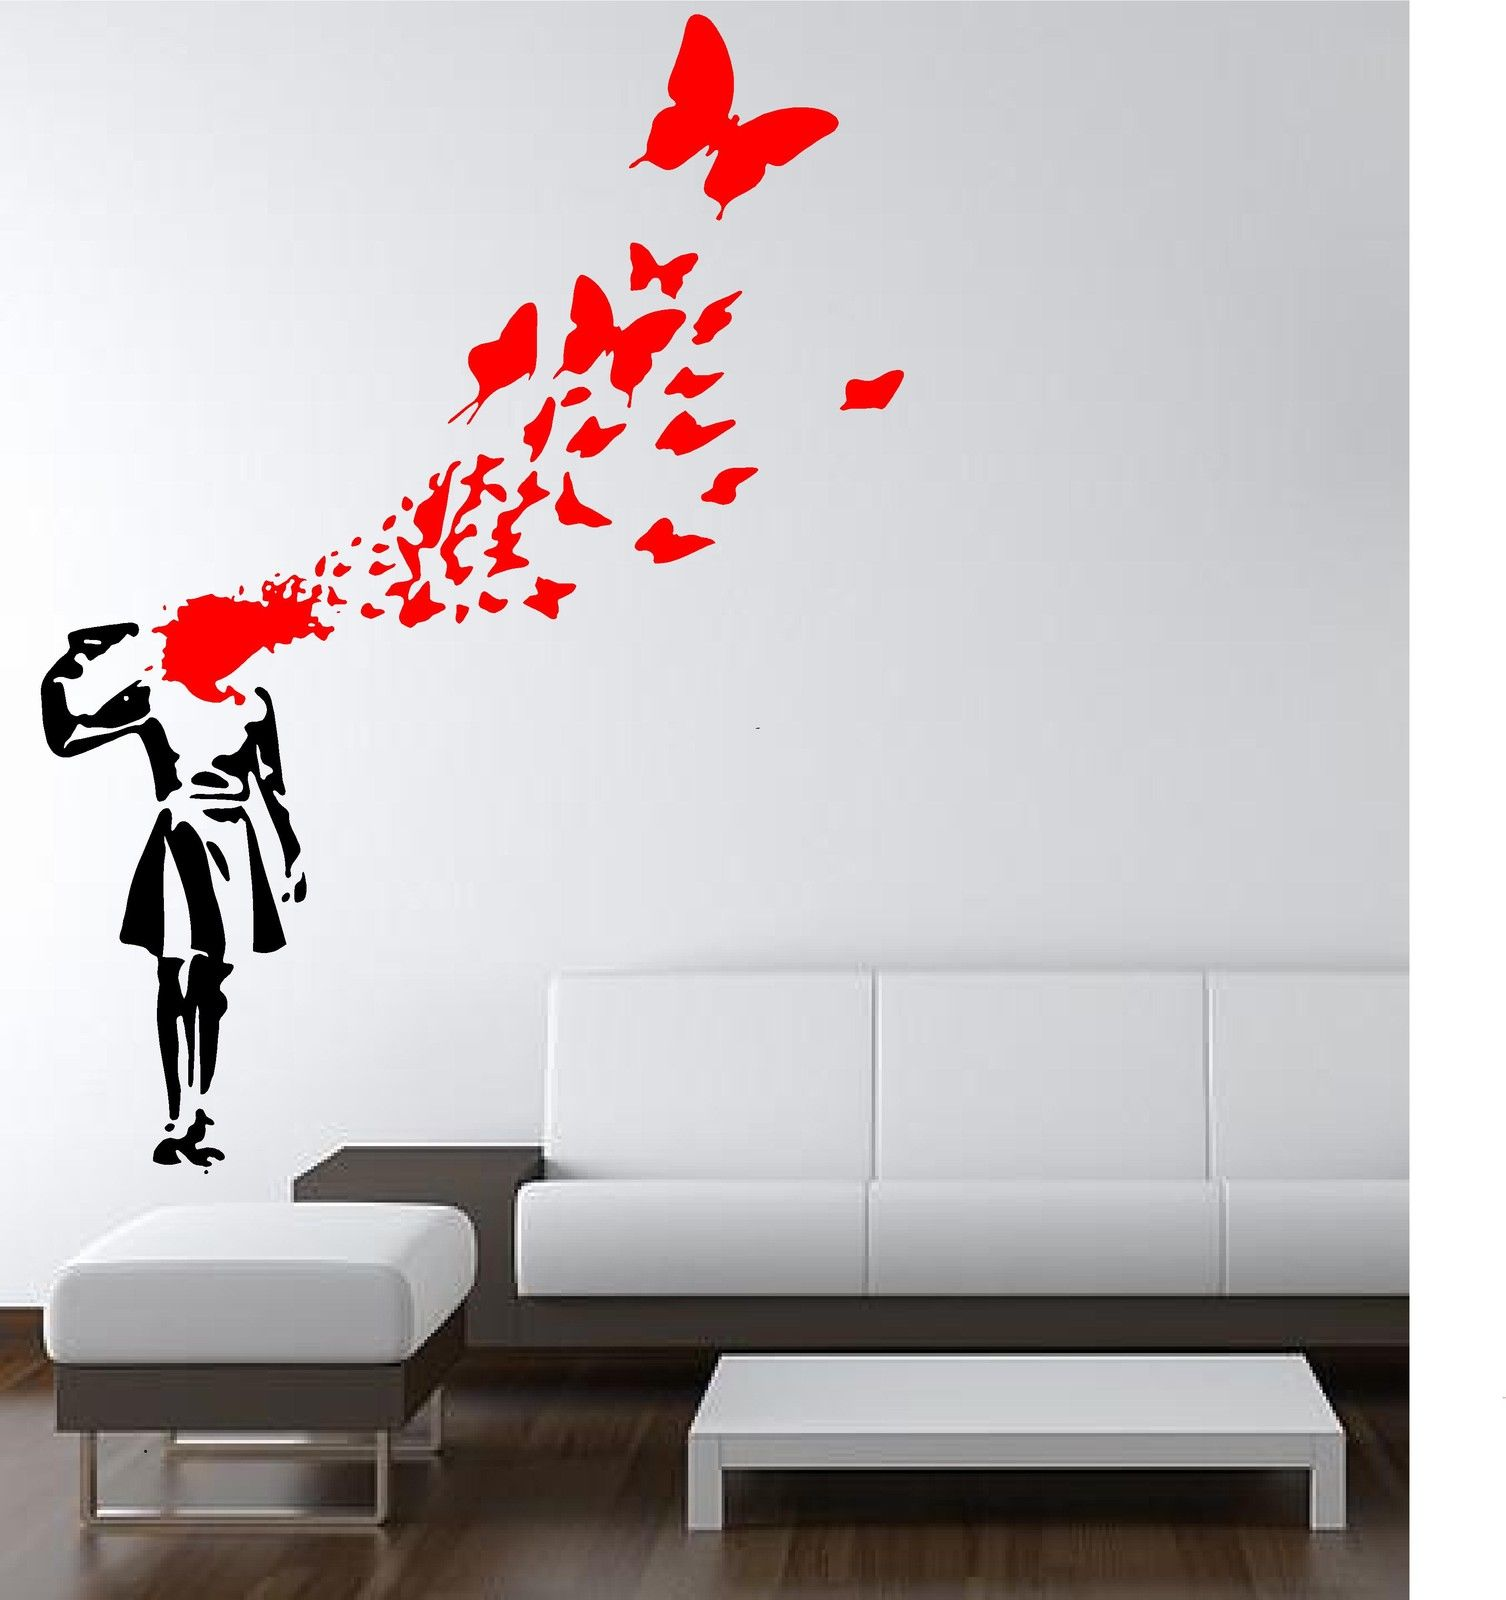 Butterfly Wall Stencils Painting Online Buy Wholesale Butterfly Wall Stencils From China